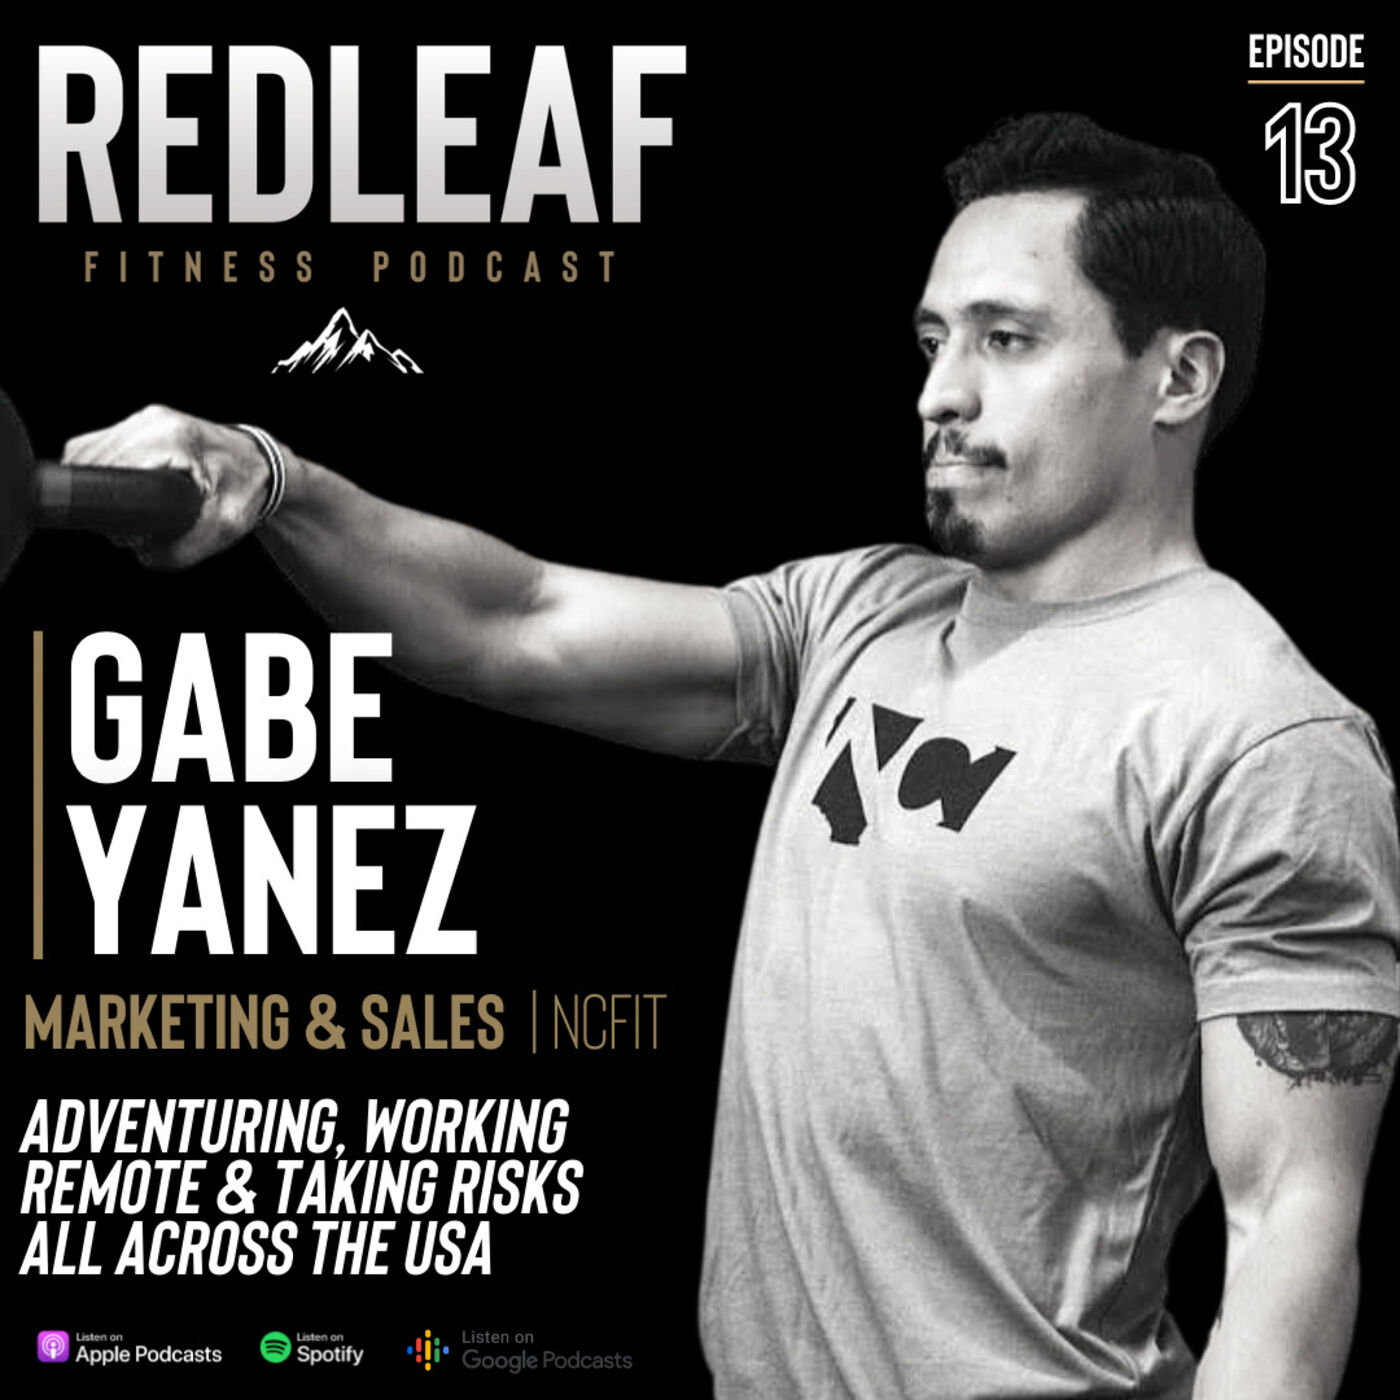 Ep.13 | Gabe Yanez NCFIT - Adventuring, Working Remote & taking risks all across the USA